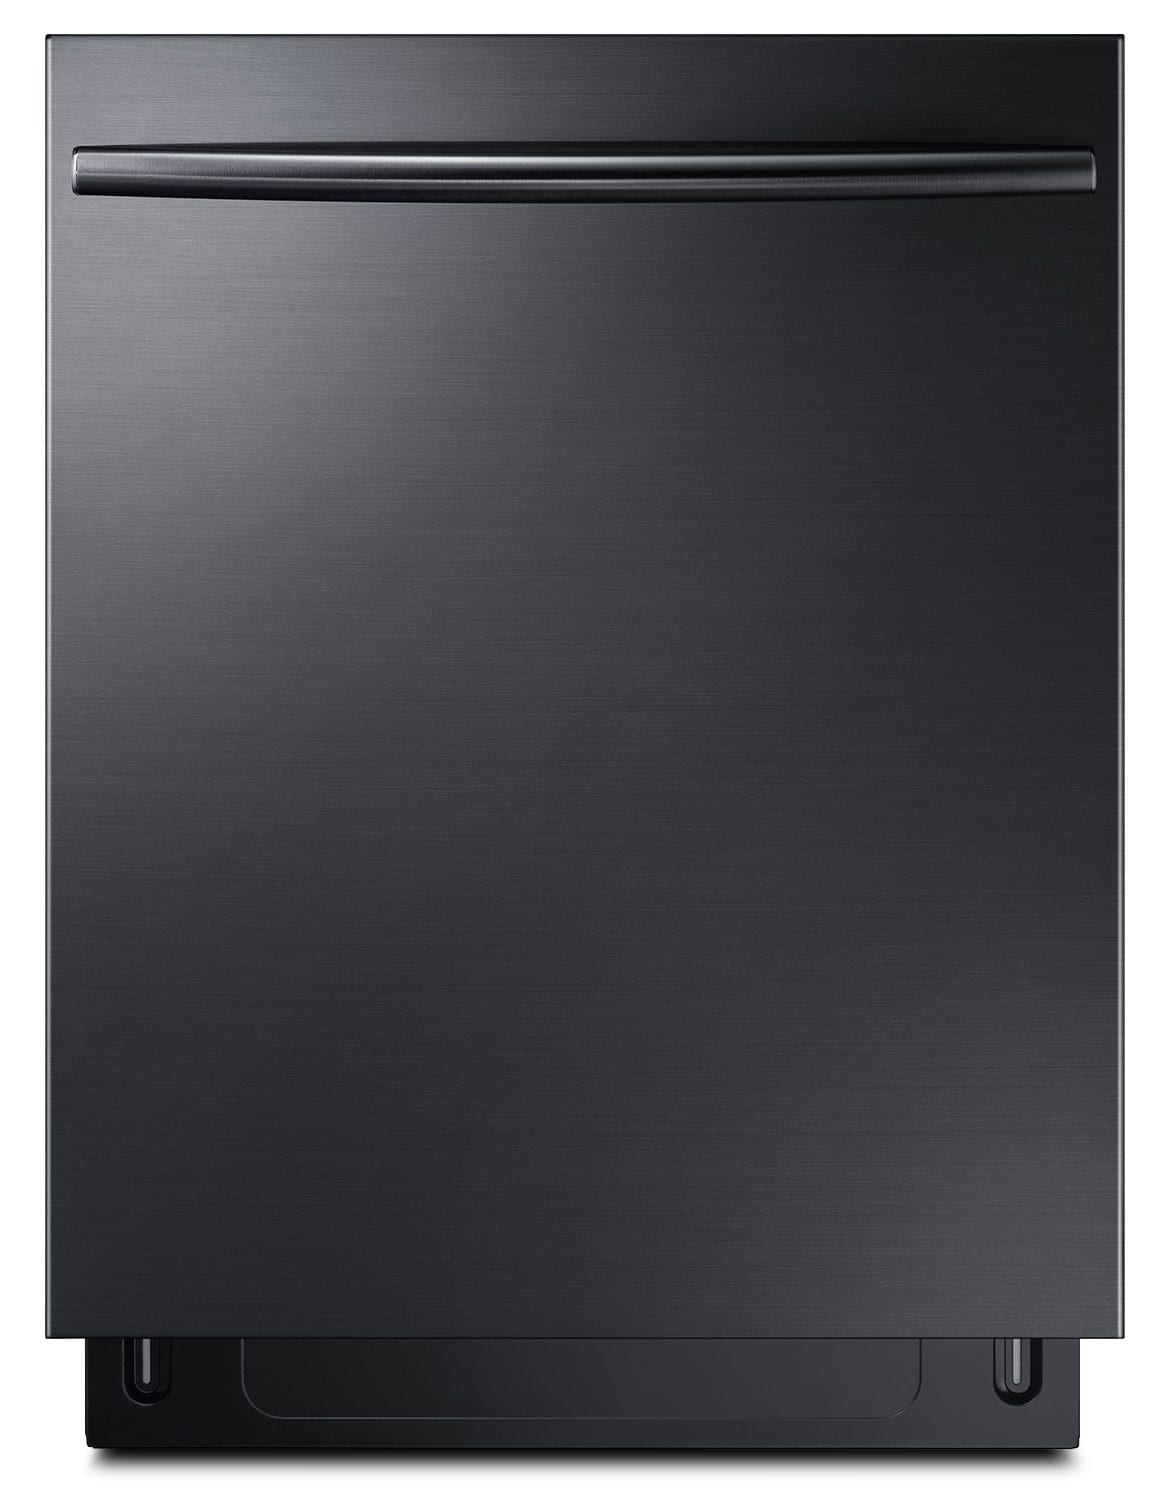 Samsung Built-In Dishwasher with Auto-Open Drying – DW80K7050UG/AC